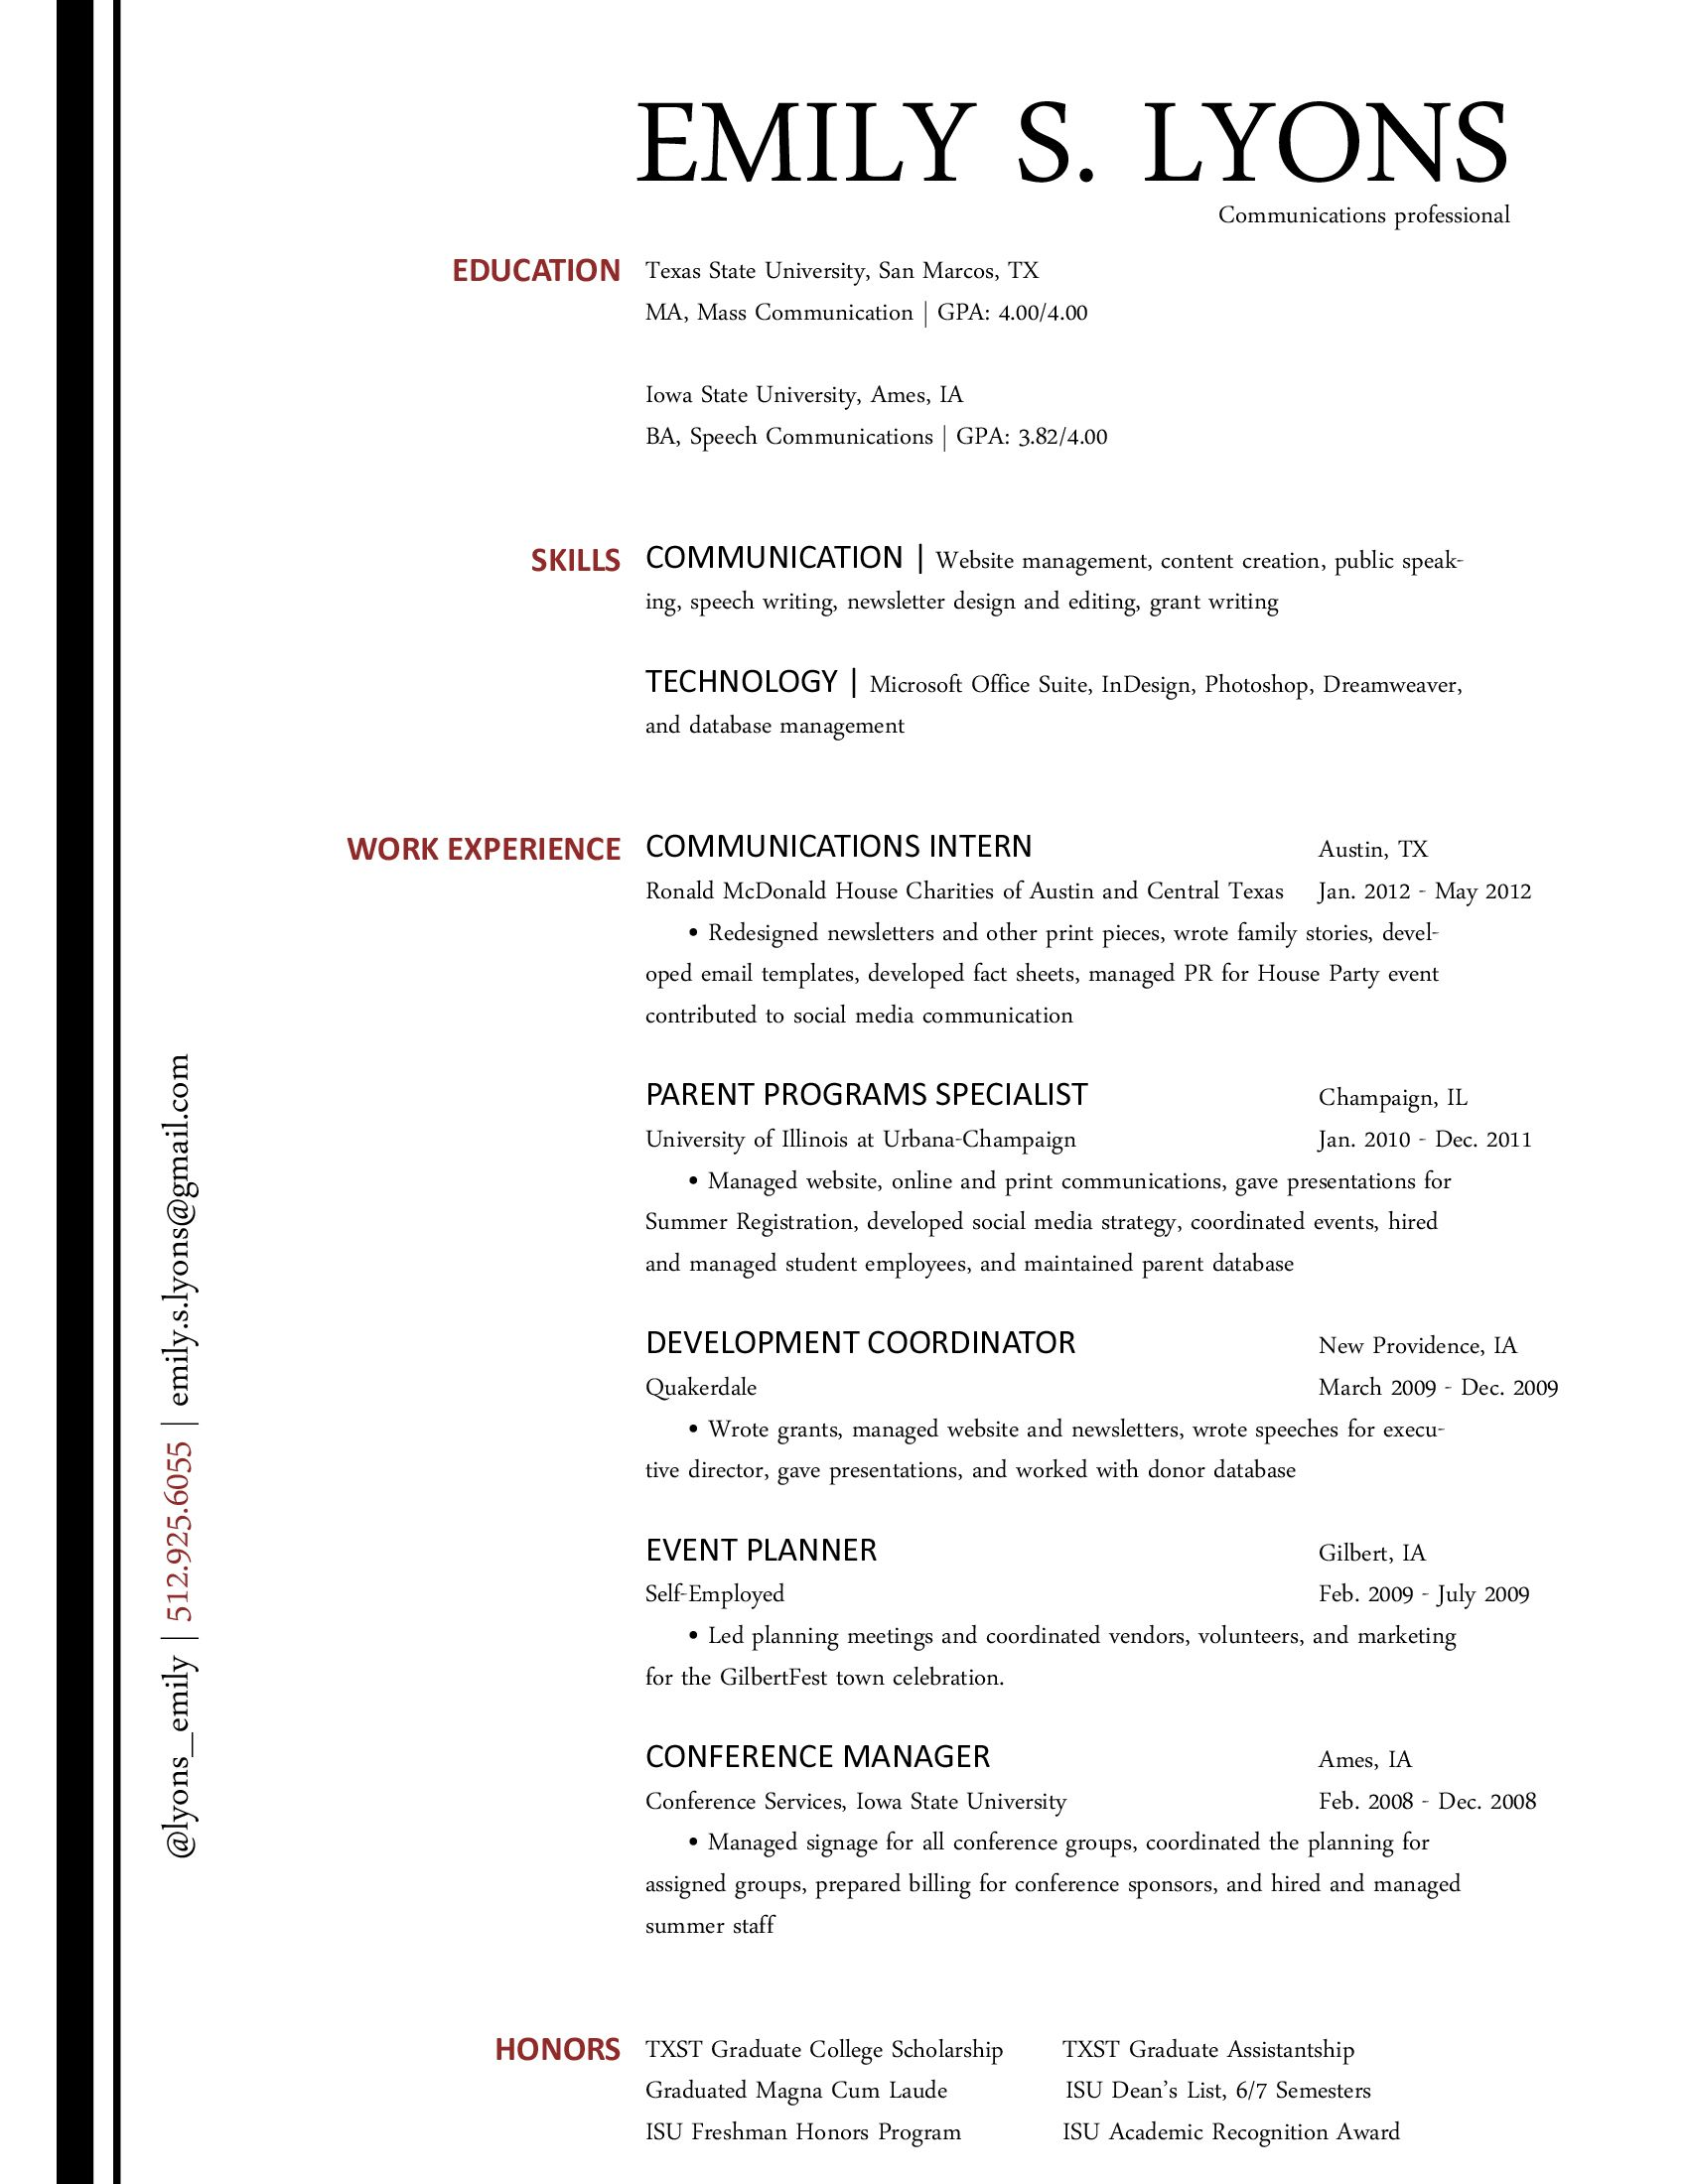 Resume Birthday International Medical Essay Competition Academic